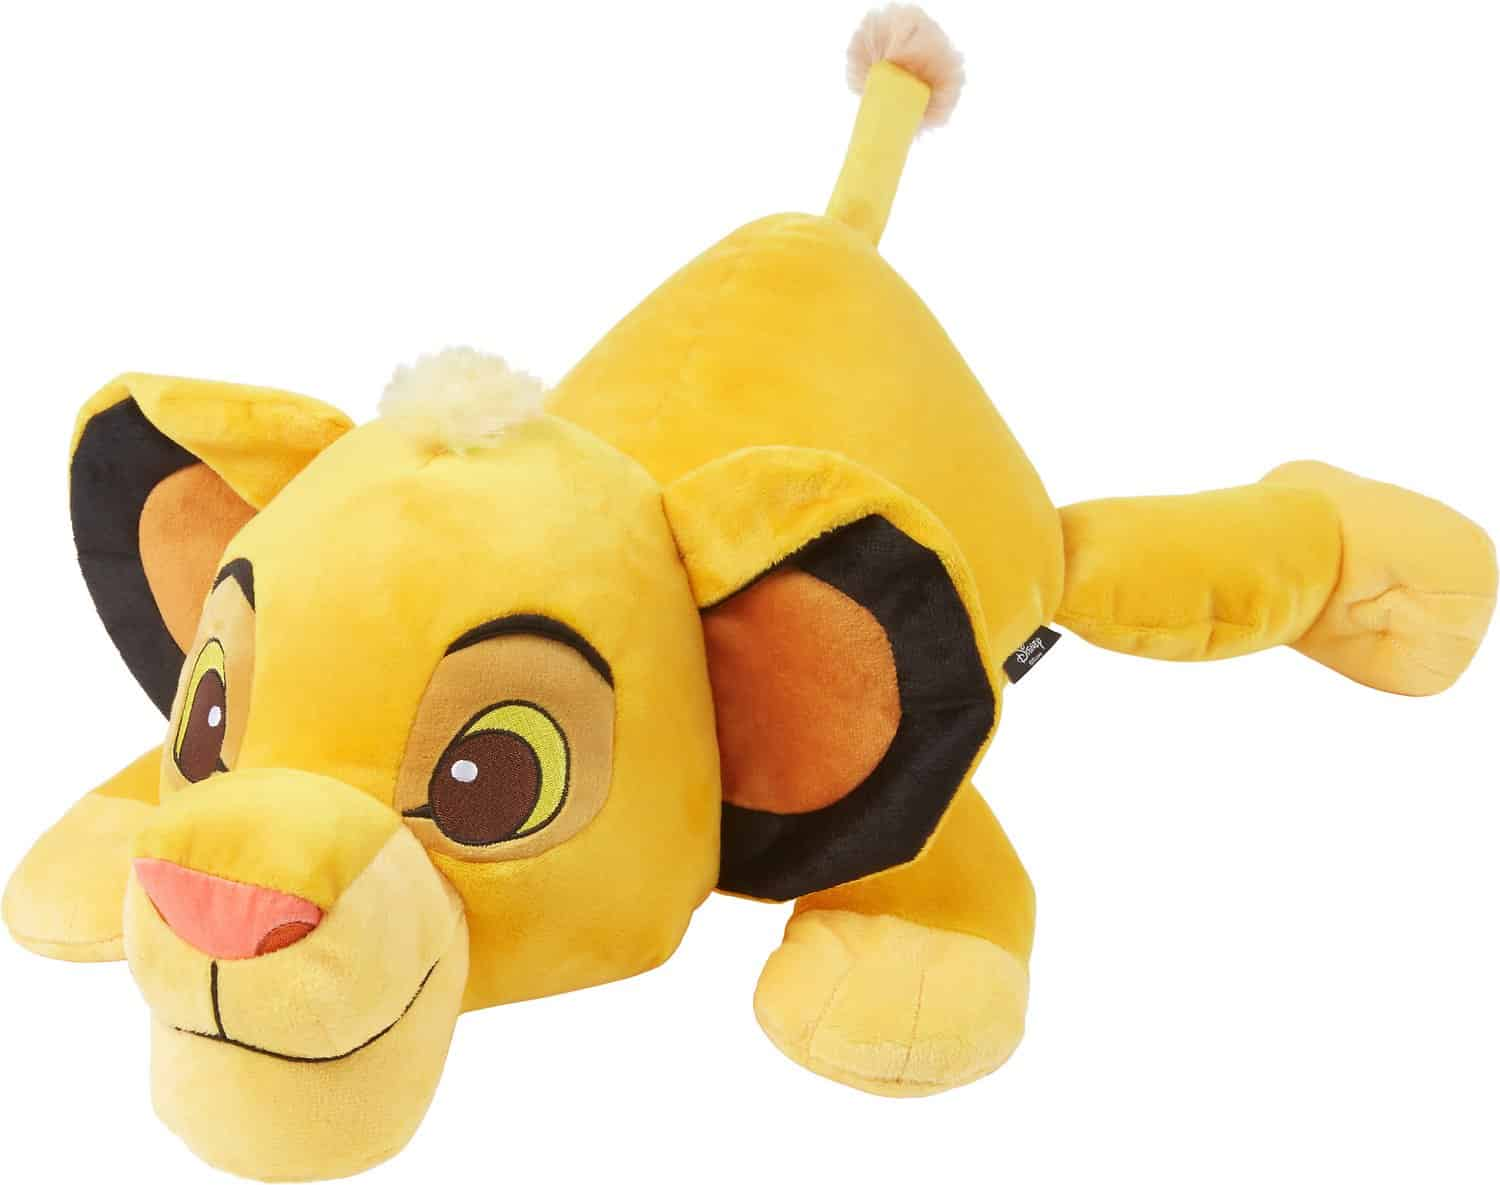 10 Insanely Cute Disney Things for Dogs You Can Buy on Chewy (Collars, Toys, Beds & More)